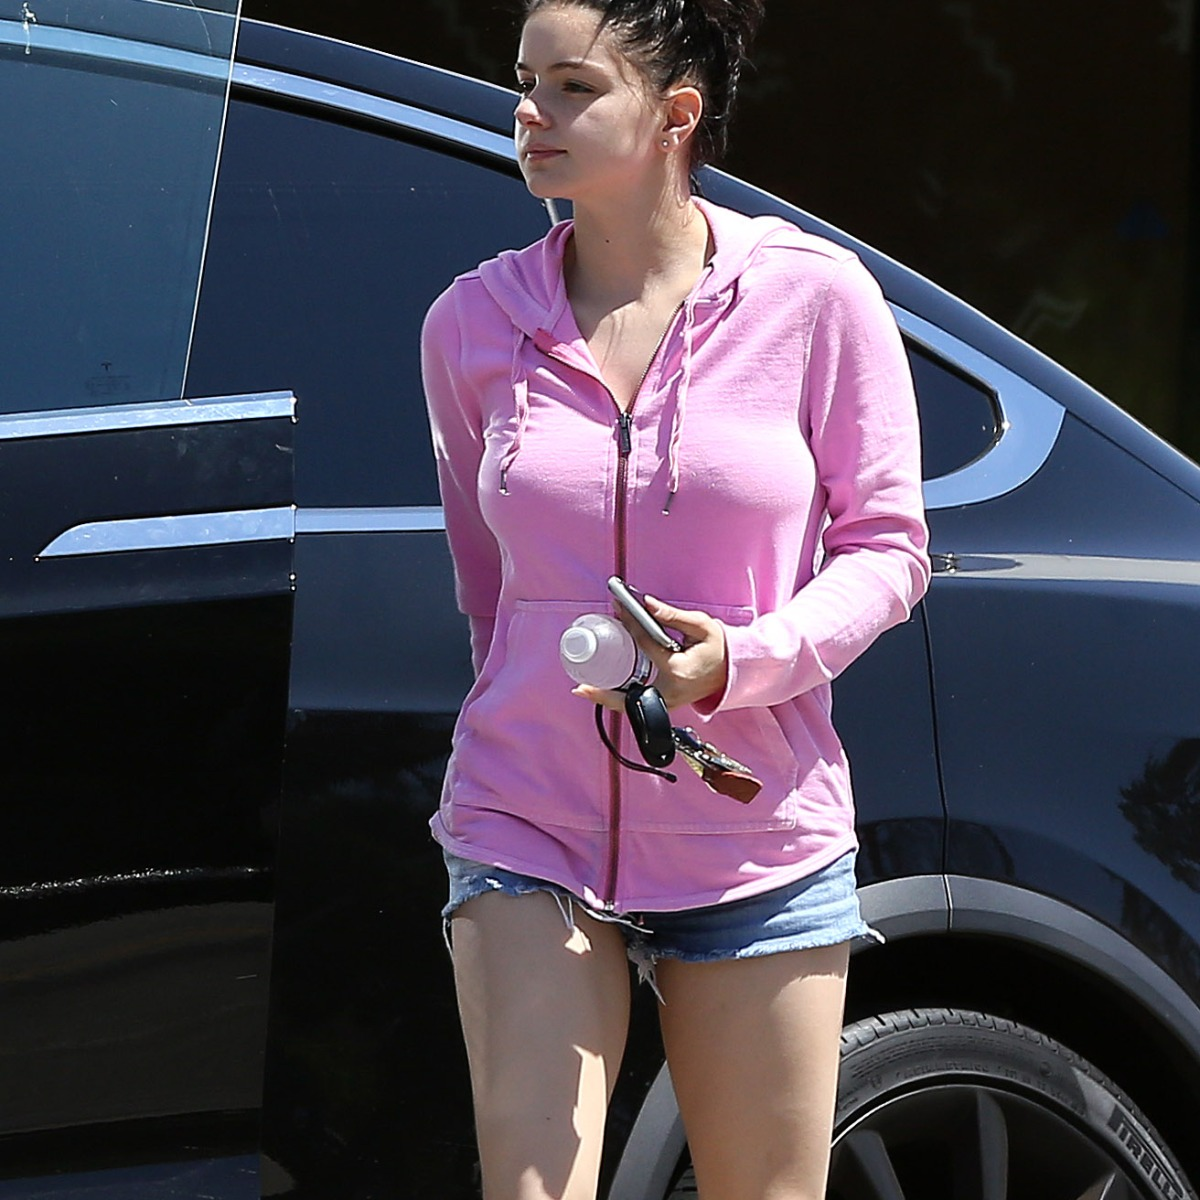 Ariel Winter Shows Off Her Toned Legs While Rocking Denim Short Shorts in L.A. — See Photos!